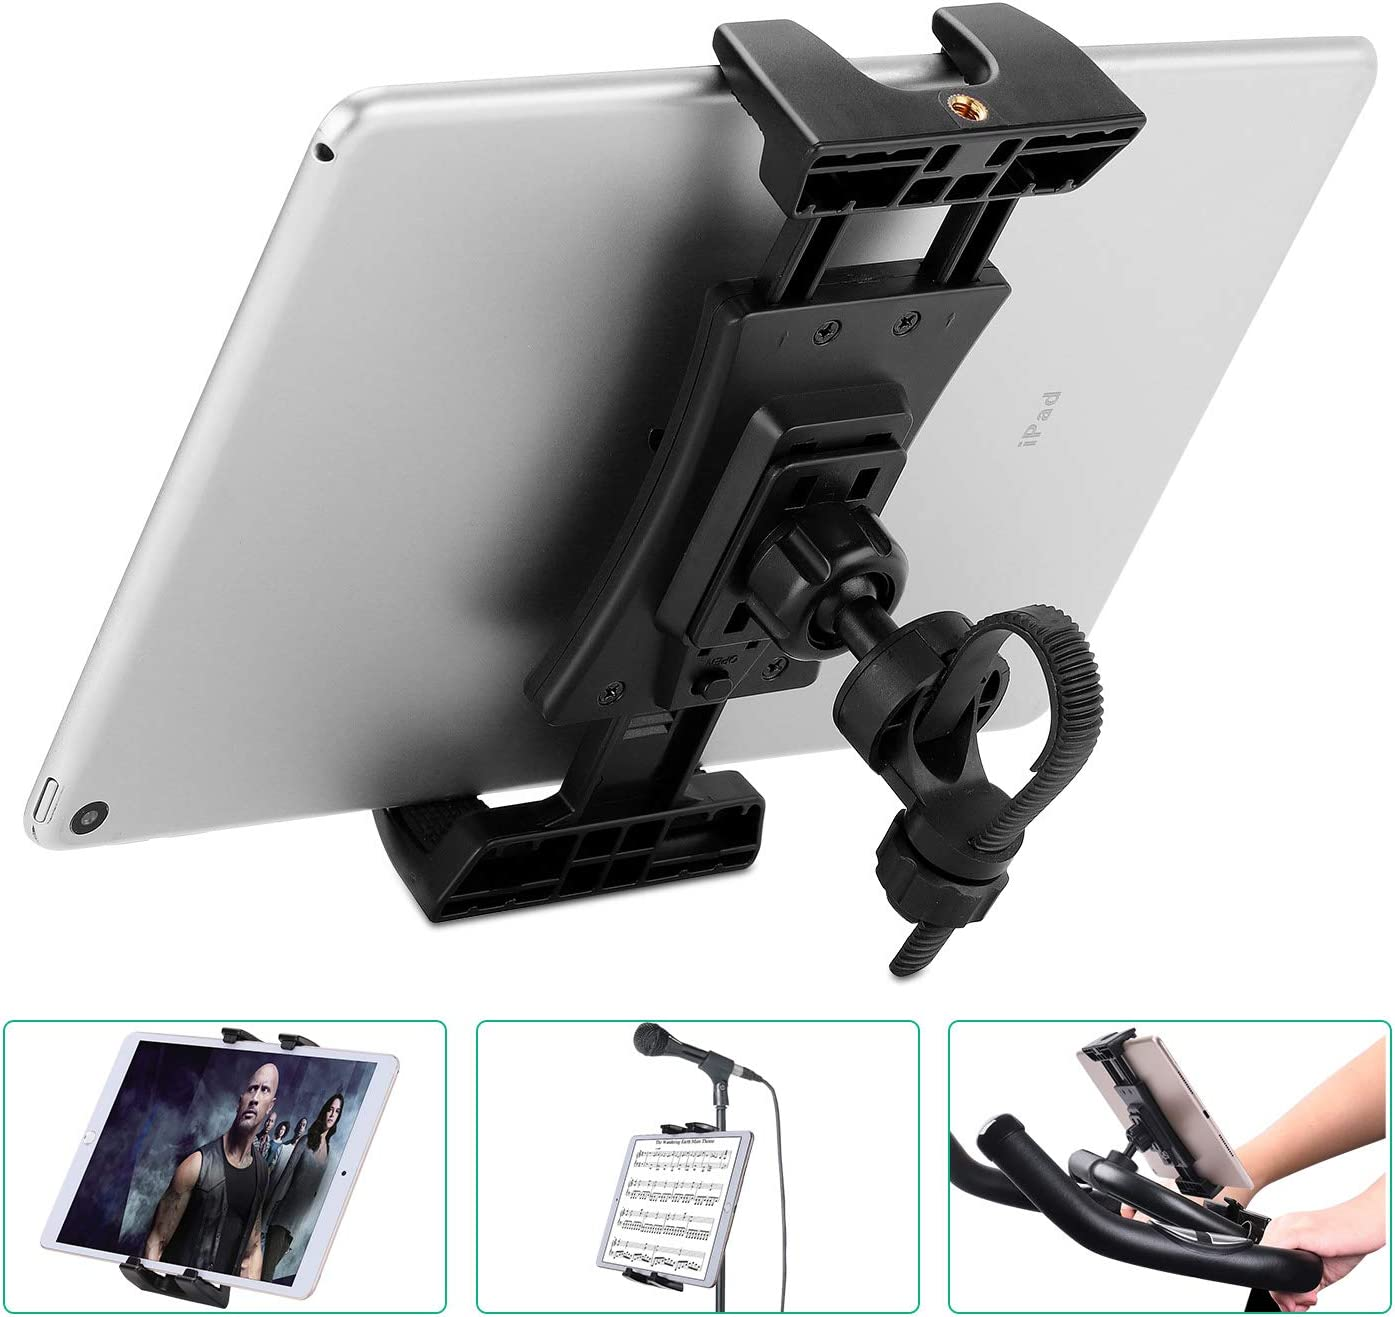 Bike Tablet Holder, Portable Bicycle Car Phone Tablet Mount for Indoor Gym Treadmill